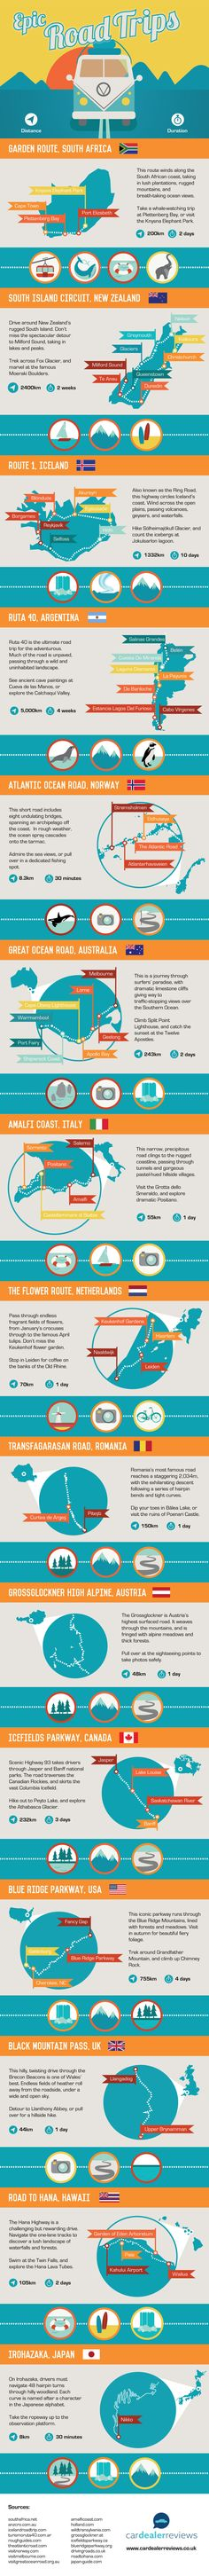 Epic Road Trips #infographic  #Travel